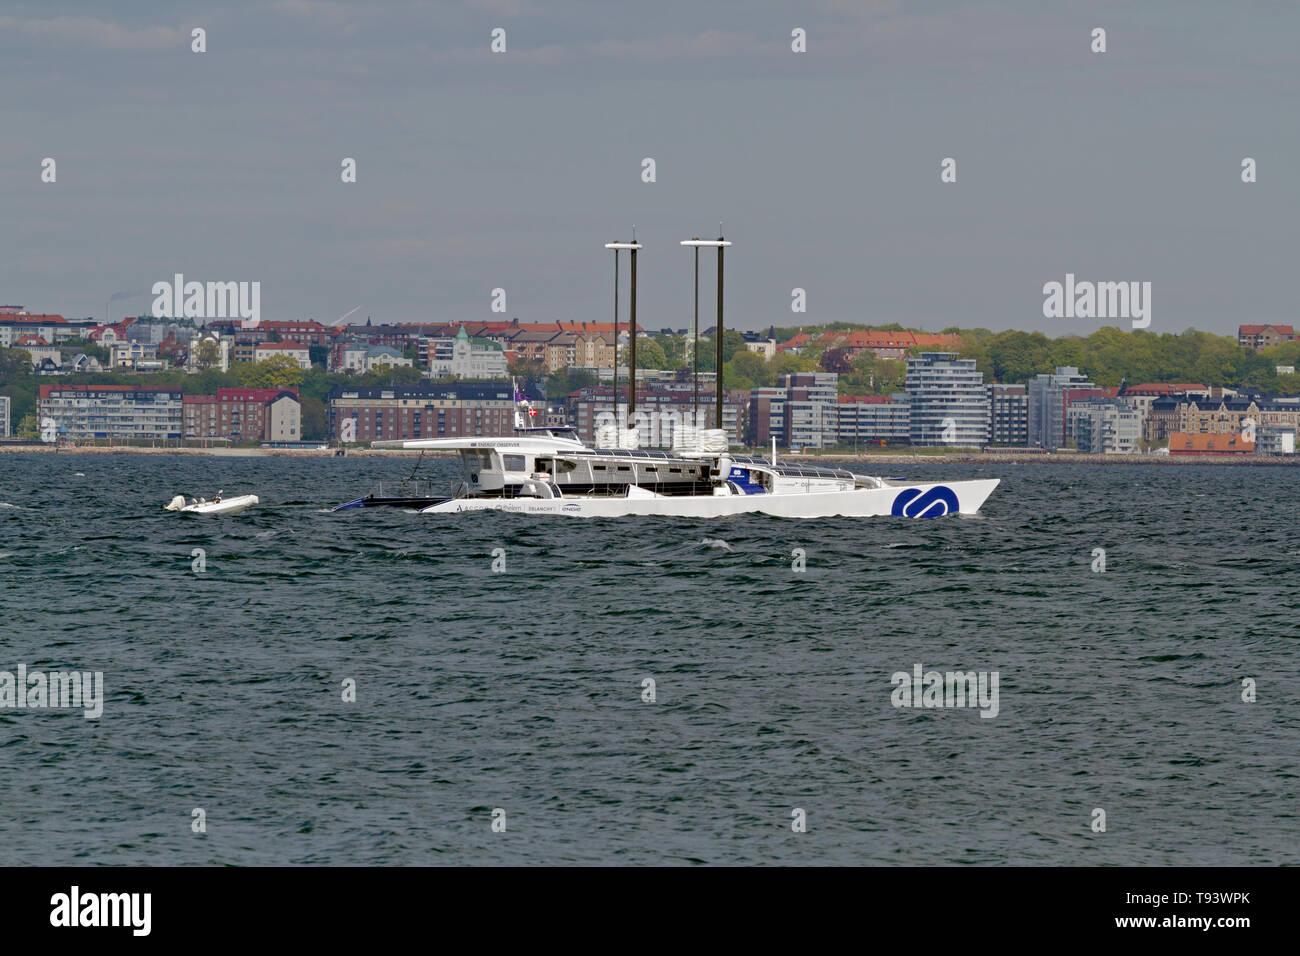 The wind, solar and hydrogen powered ENERGY OBSERVER in the Sound, Øresund, north of Elsinore on its odyssey around the world headed for Copenhagen. - Stock Image